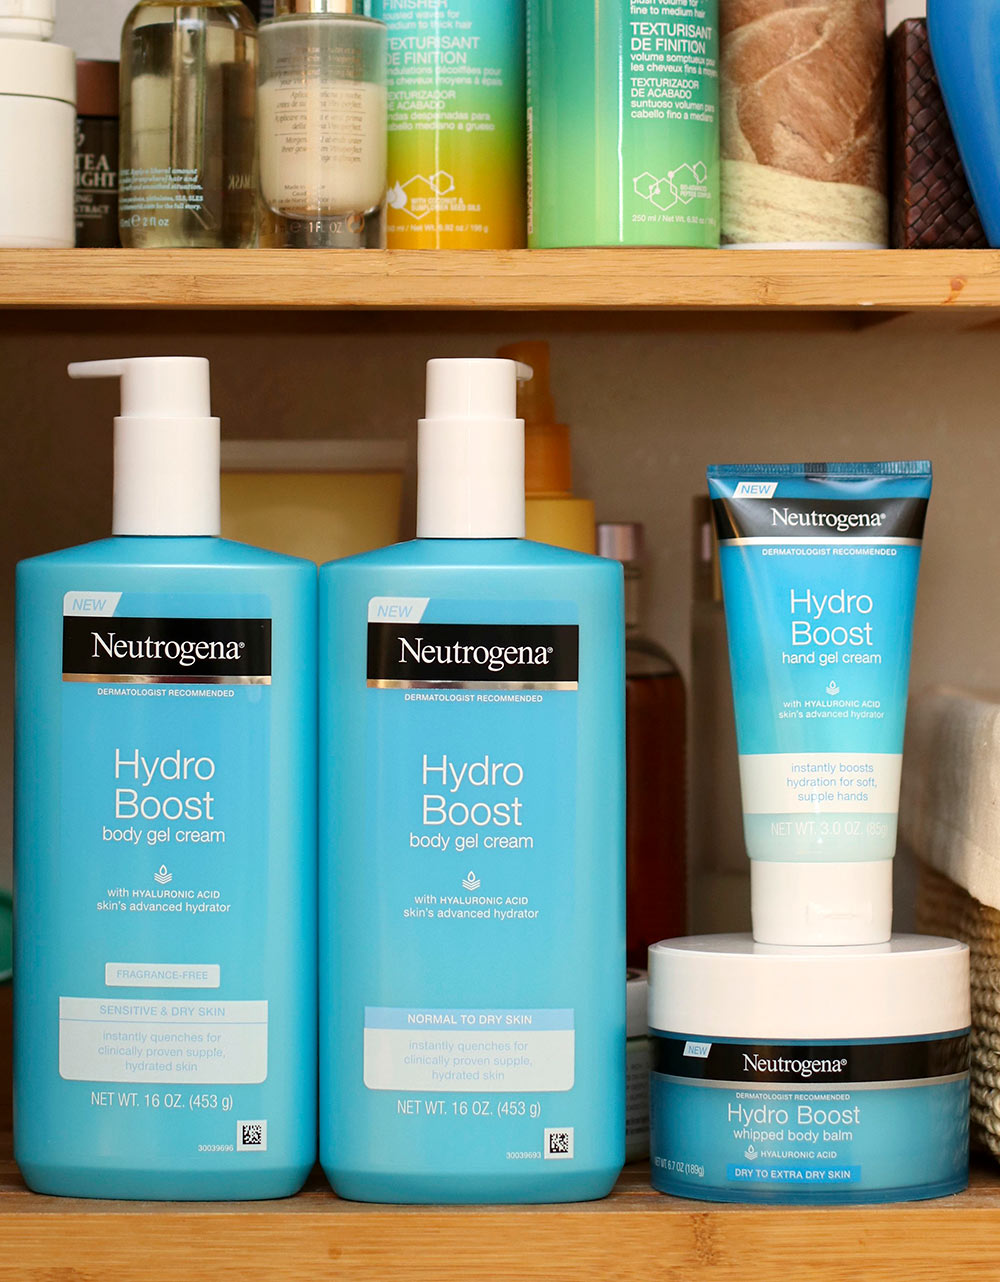 neutrogena hydroboost gel cream